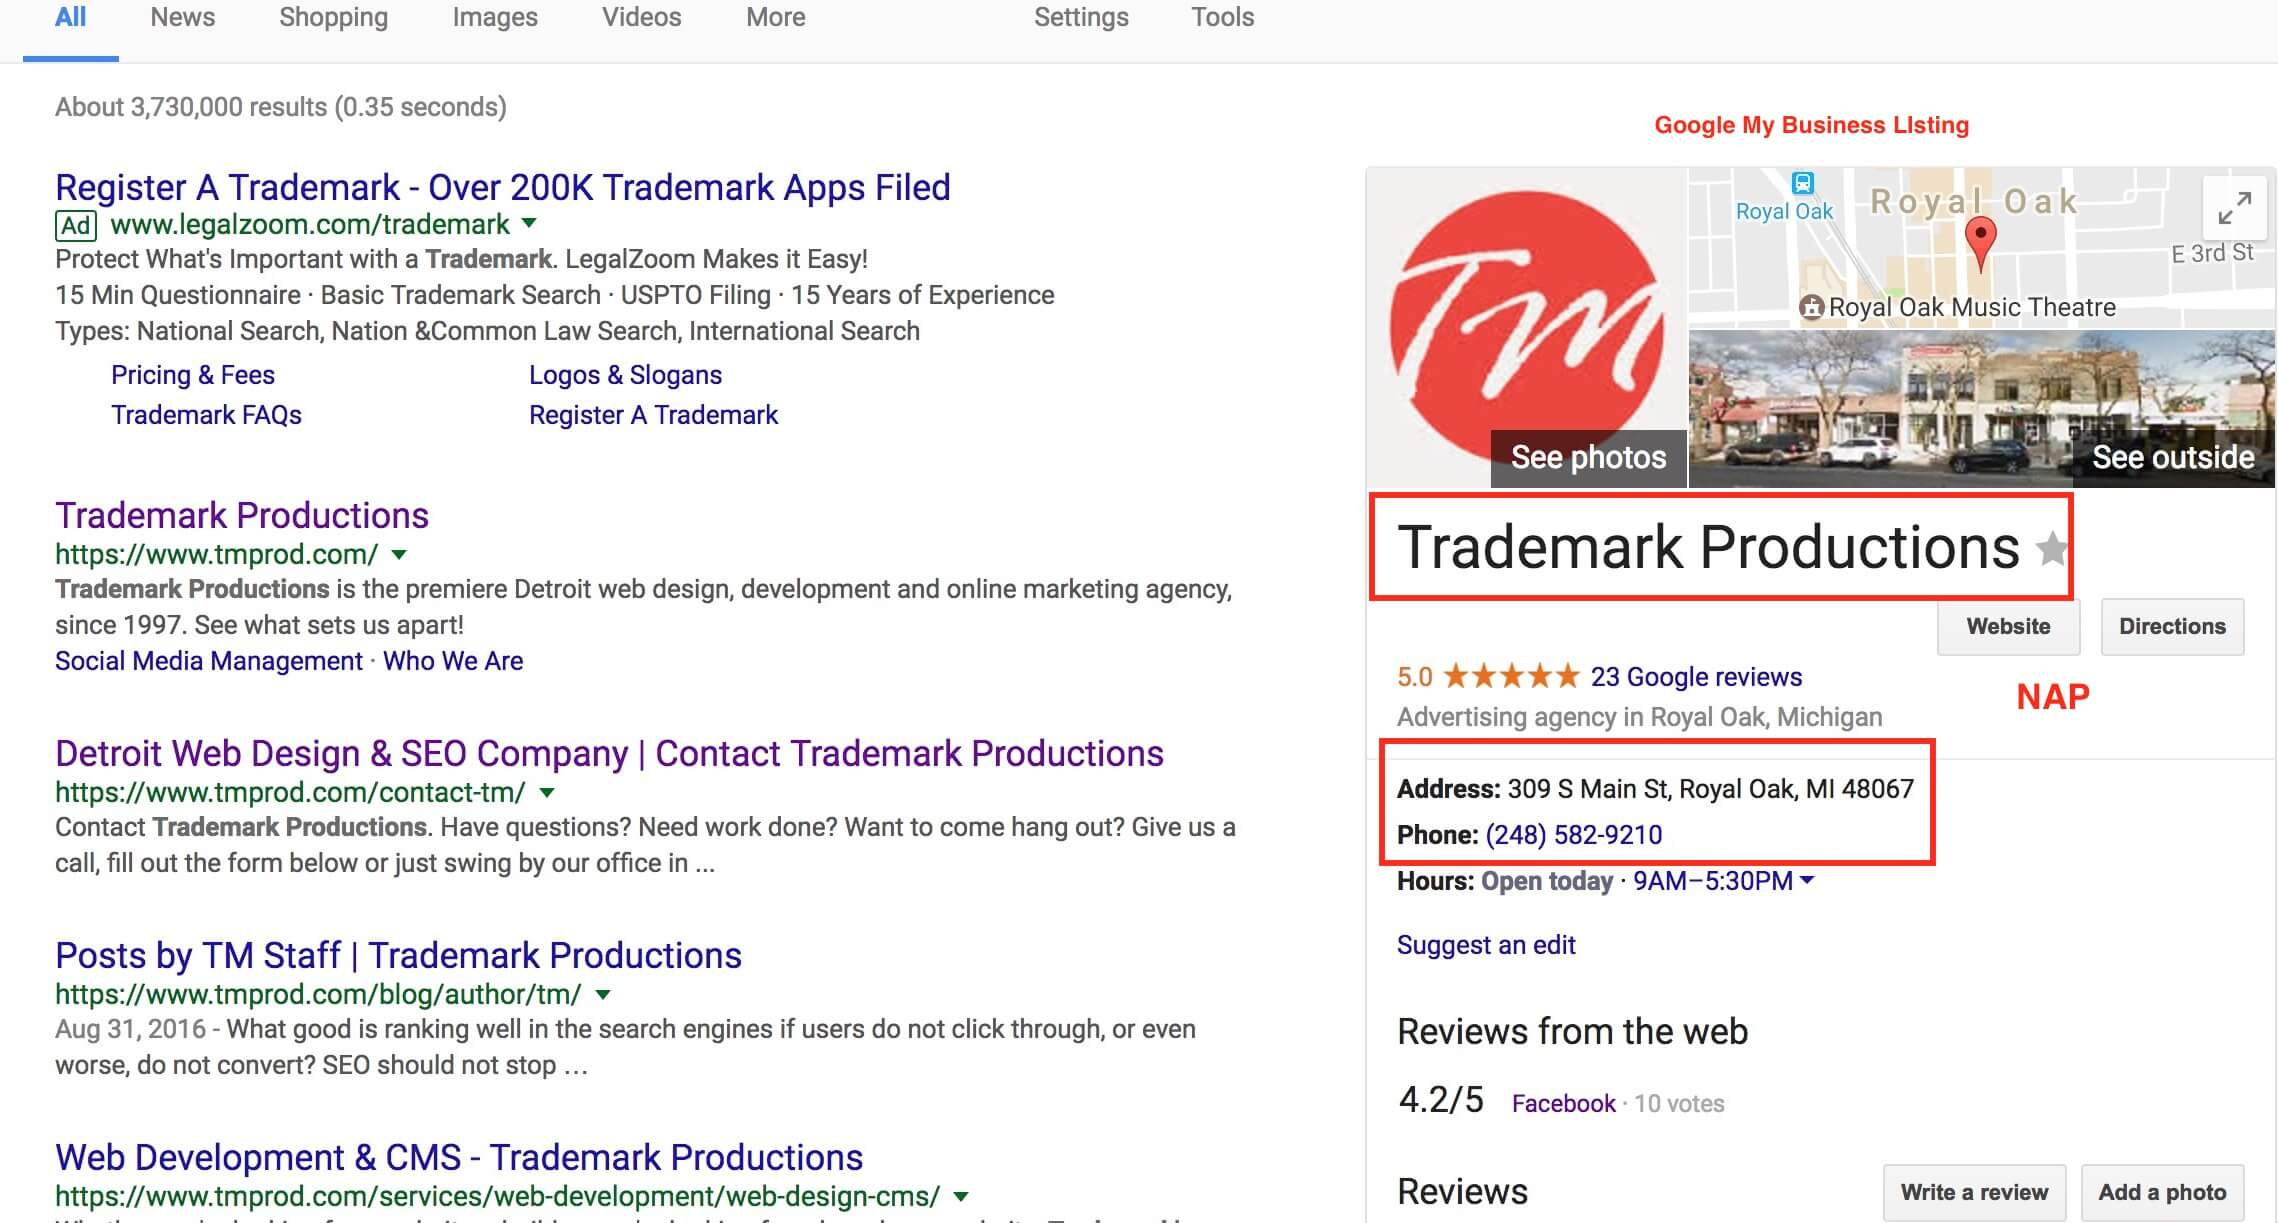 Trademark Productions' Google My Business Listing in Search